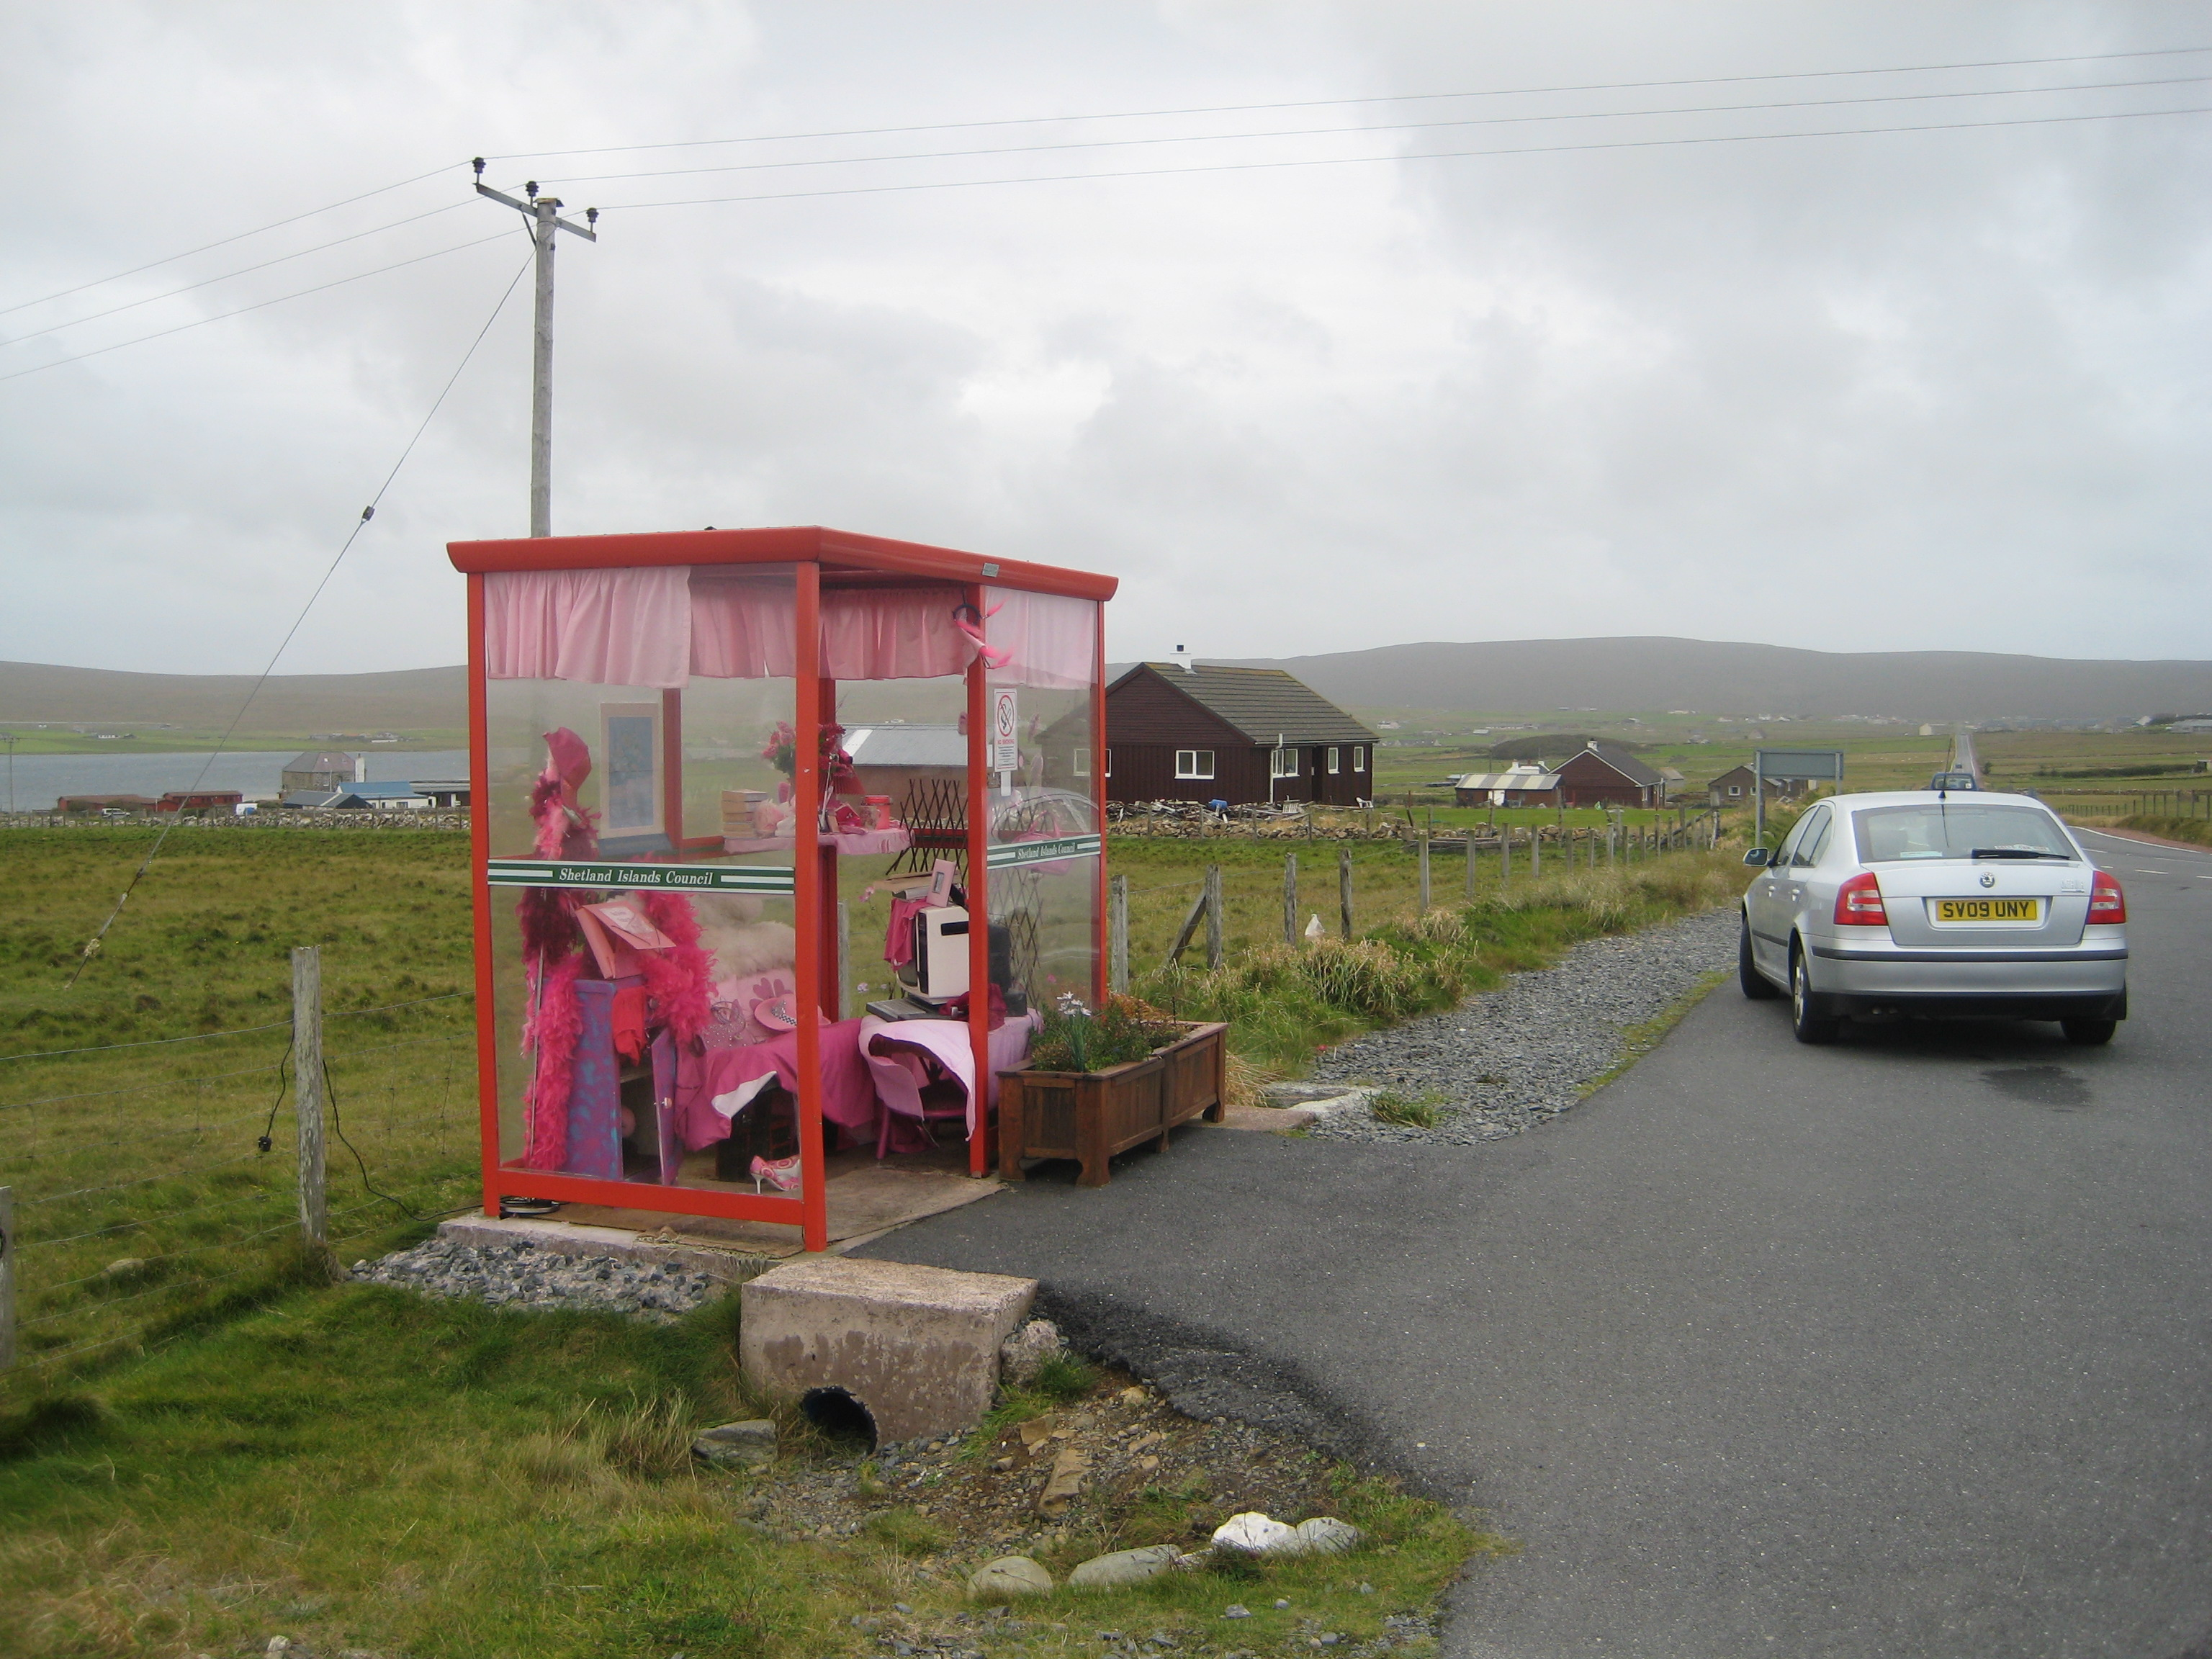 The Haroldswick bus stop. Yes, really!